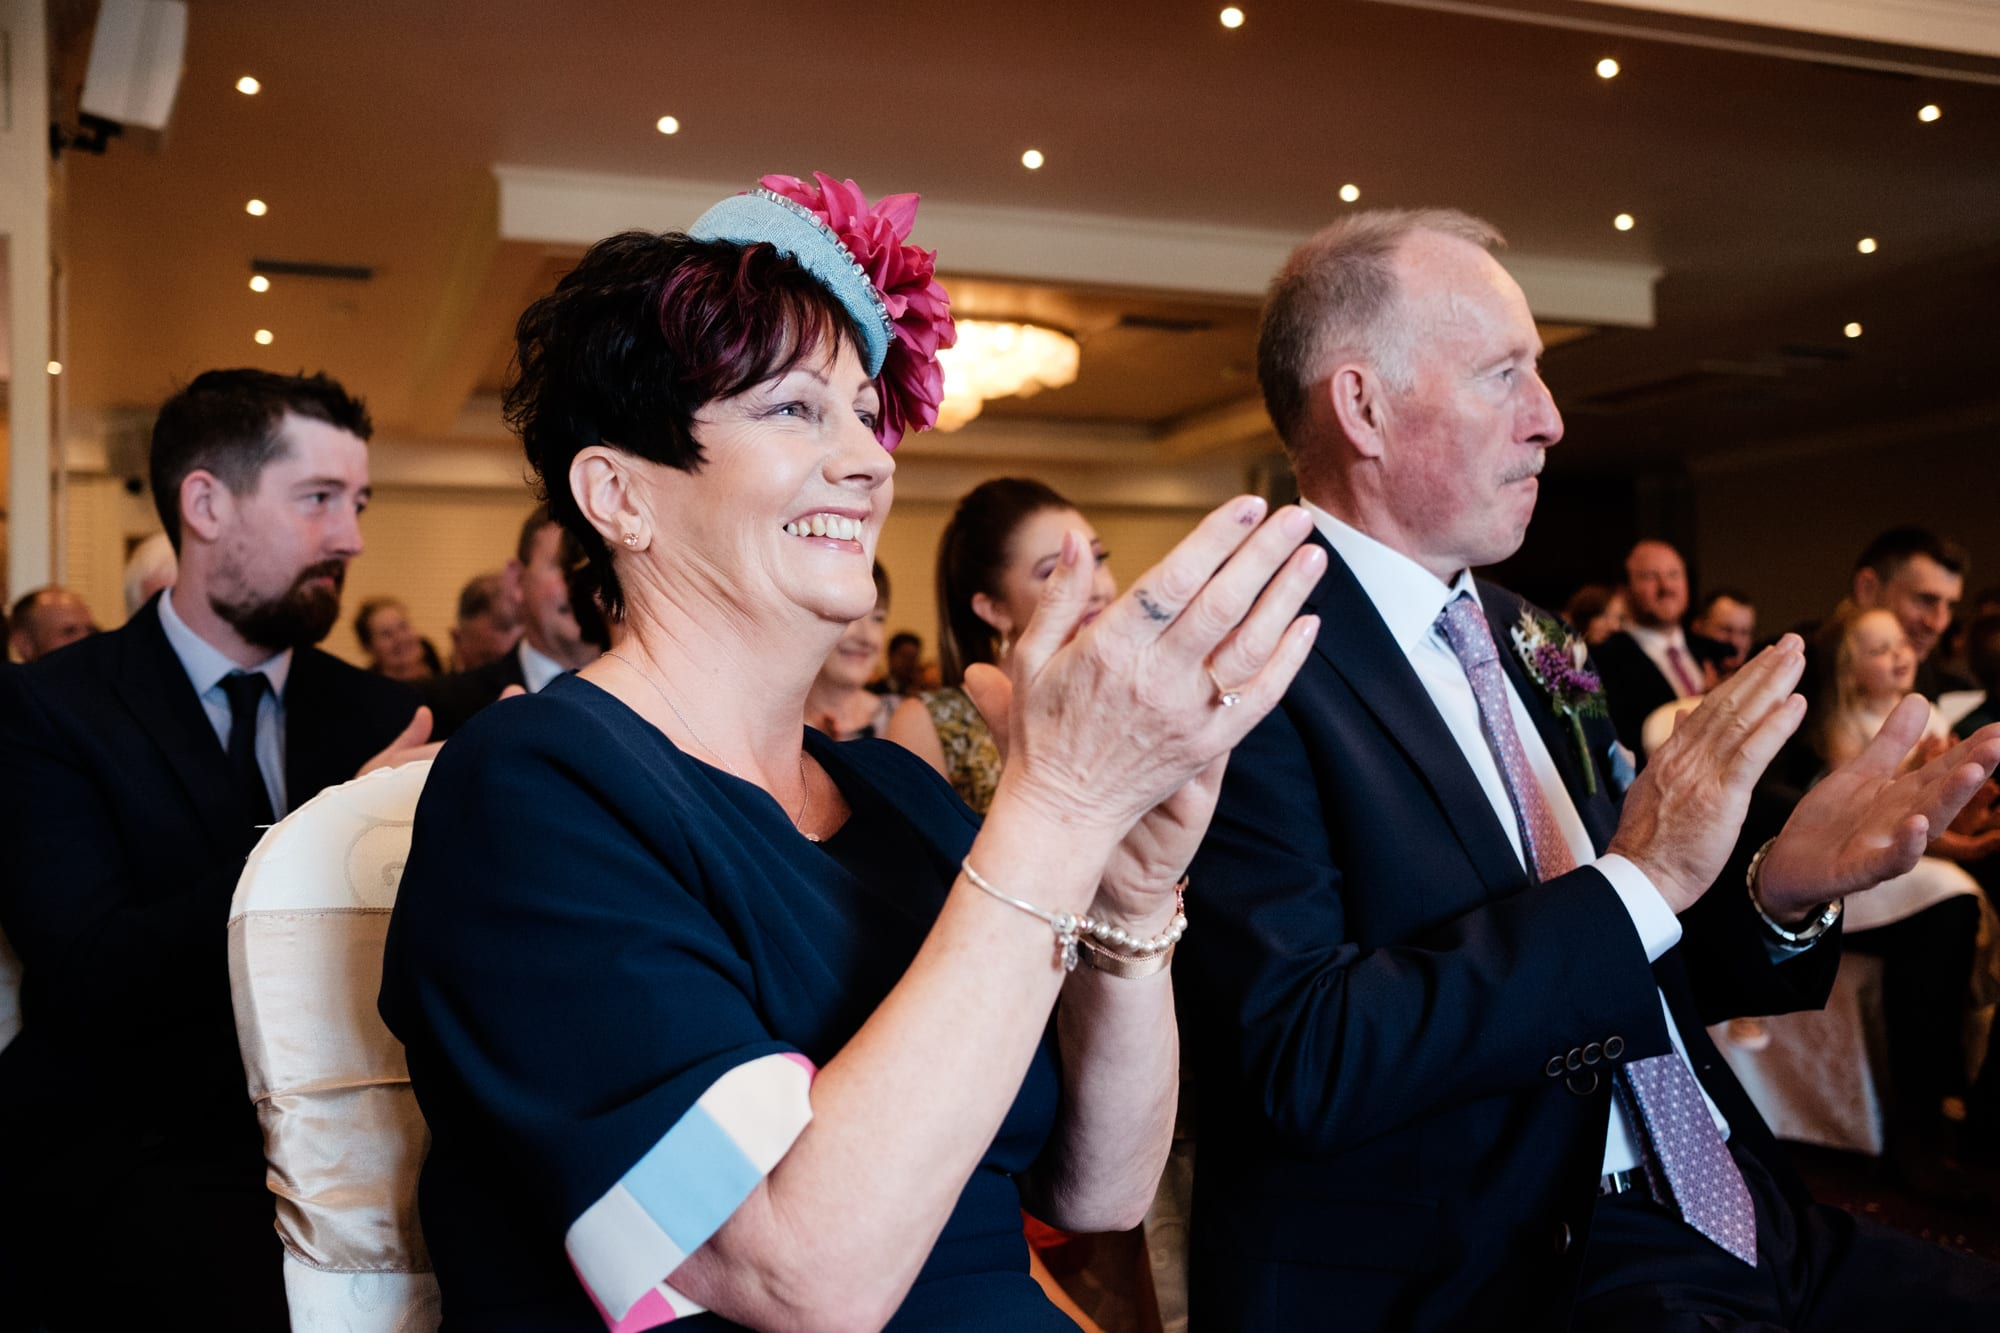 parents clapping at wedding